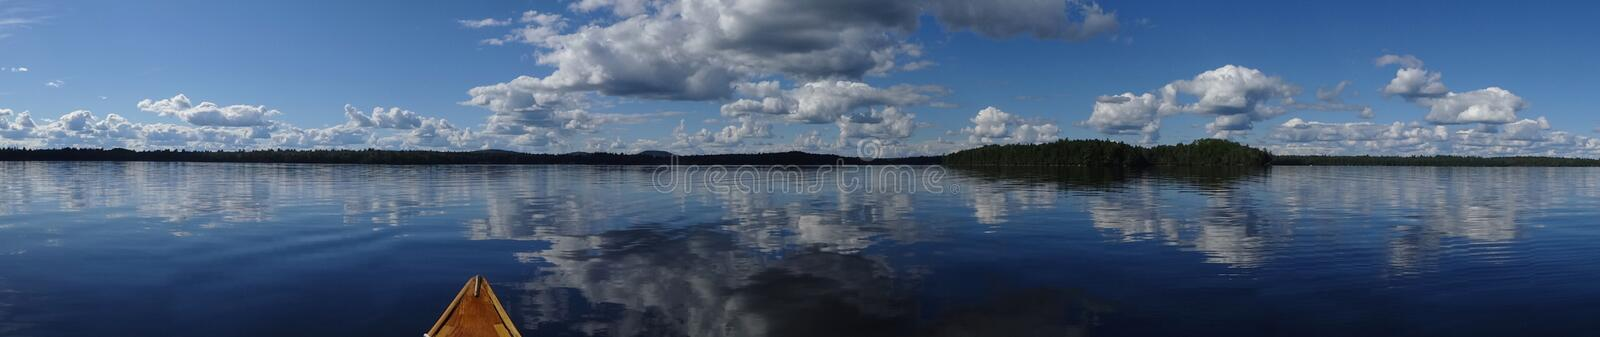 Ainda panorama do lago com canoa foto de stock royalty free